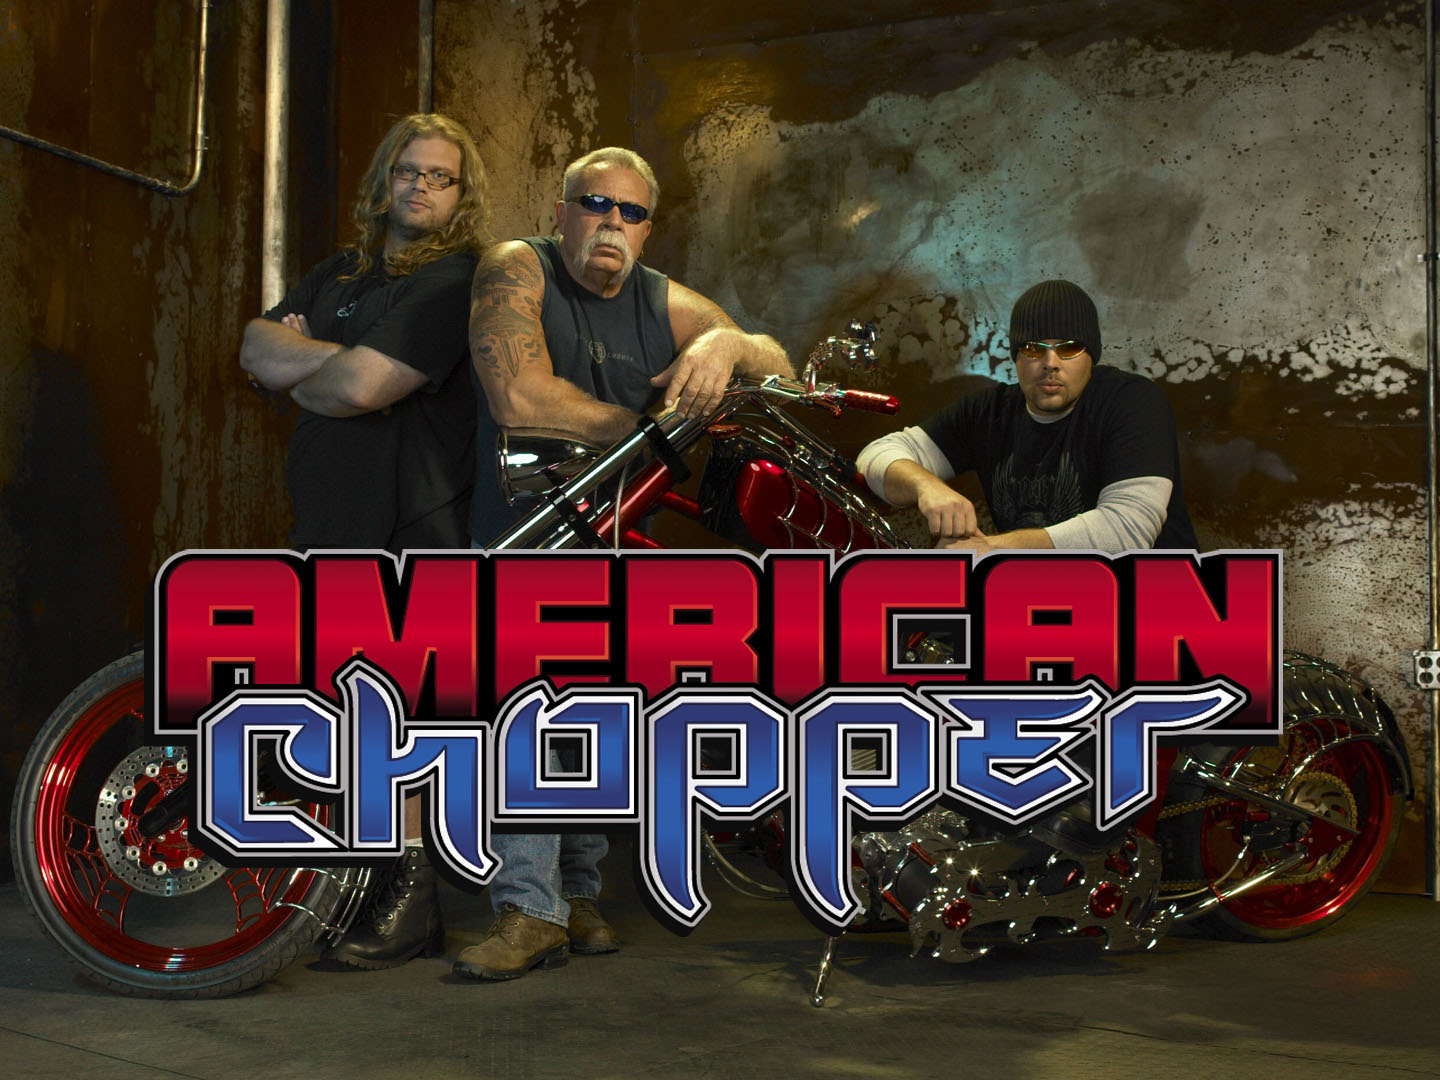 Orange County Choppers >> American Chopper Series Ends After 10 Years - autoevolution